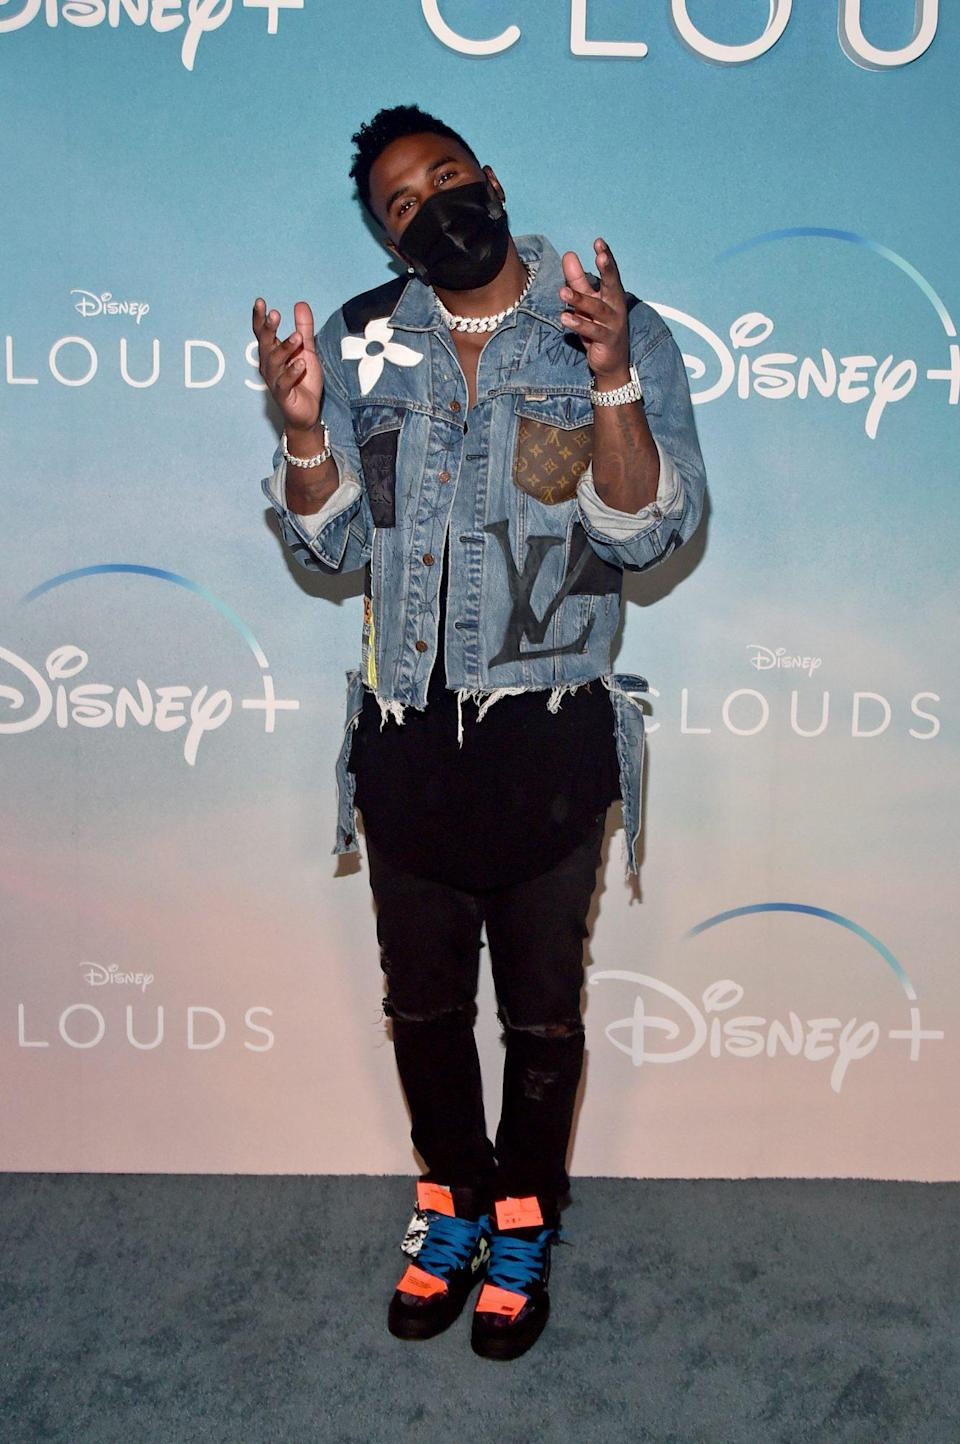 <p>Jason Derulo attends the world premiere screening of the Disney+ original movie <em>CLOUDS</em> at the Disney+ Drive-In Festival at Barker Hangar on Monday in Santa Monica.</p>